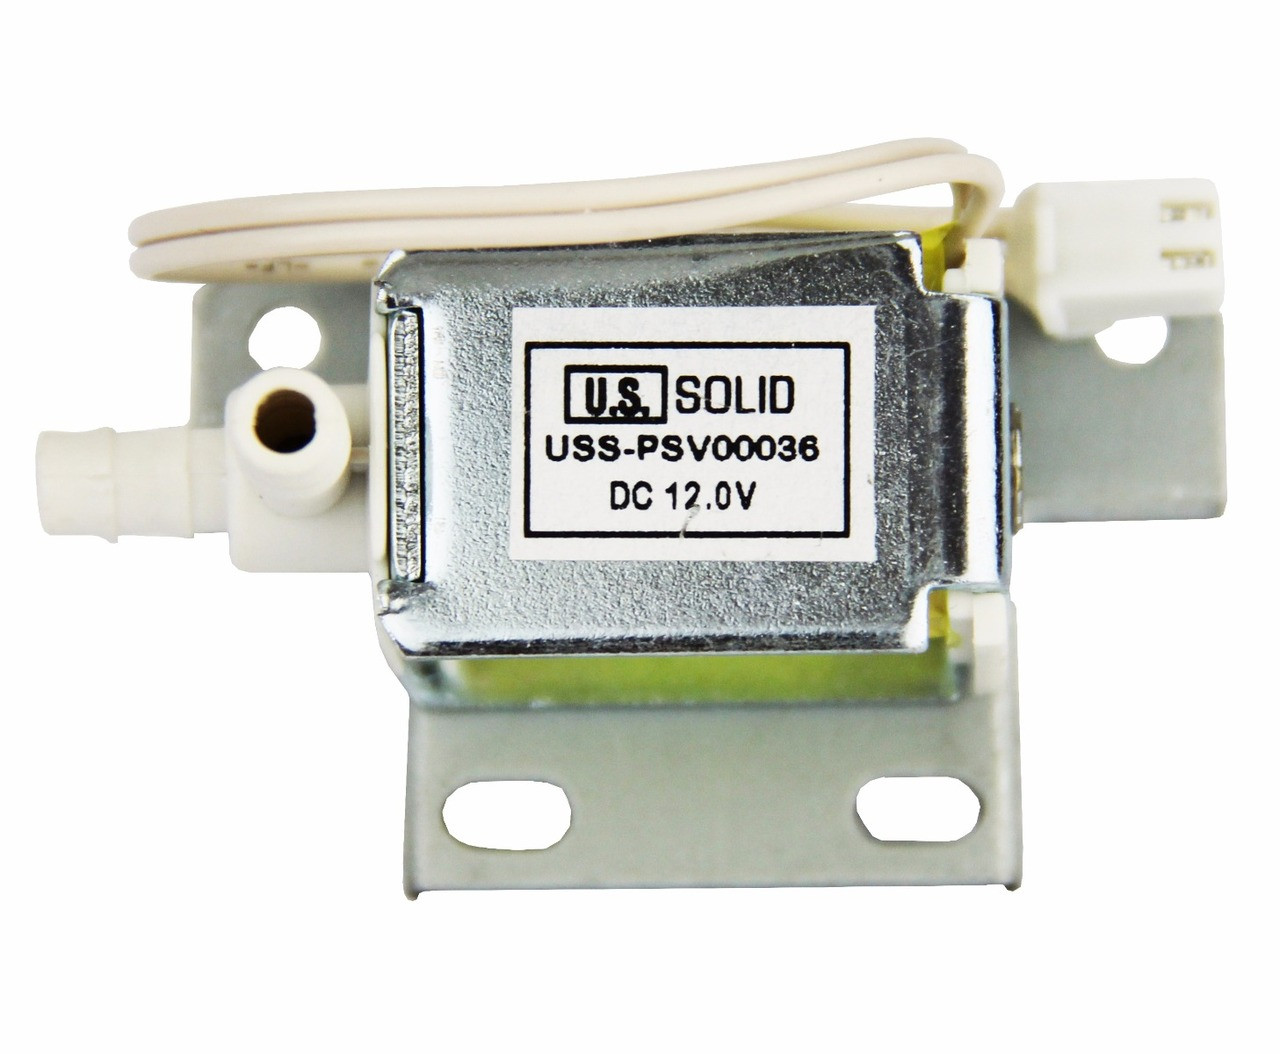 U.S. Solid Two-Way  Angle Mini Air Solenoid Valve DC 12 V